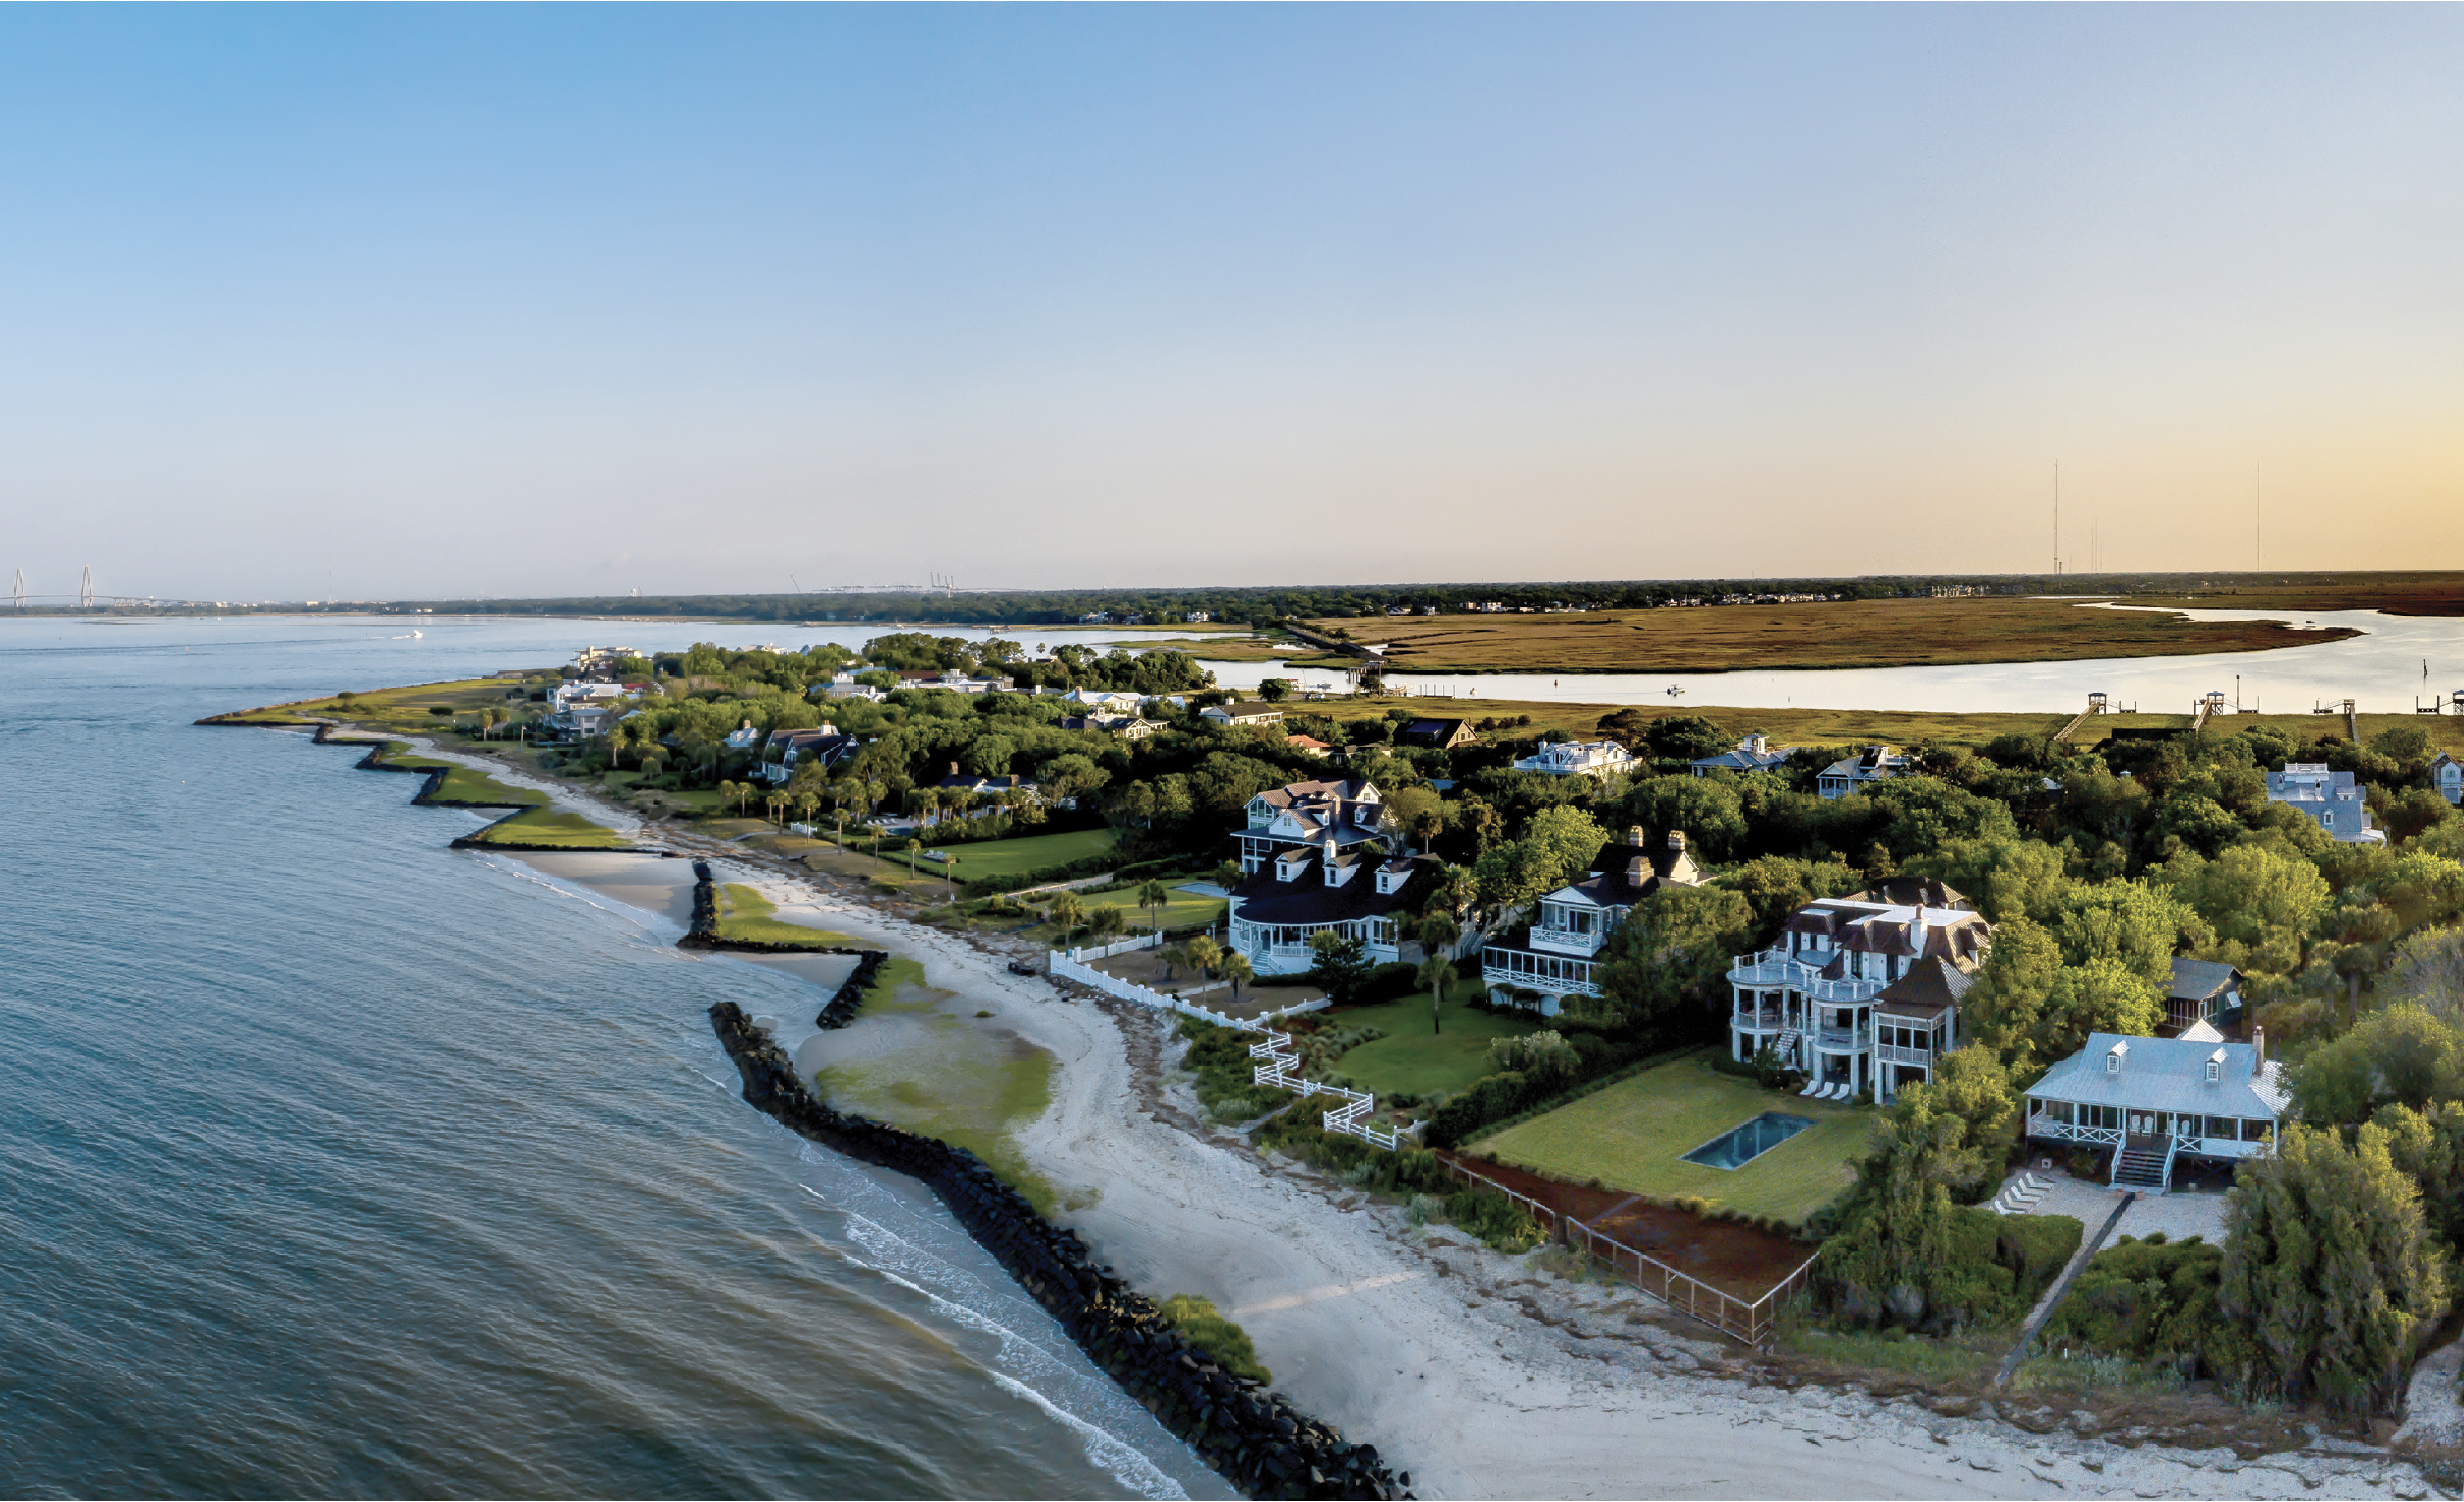 The southern tip of Sullivan's near Fort Moultrie curves to the Intracoastal Waterway, with Mount Pleasant's Old Village on the far side. There, a trolley bridge across Cove Inlet once connected summer residents to the island.